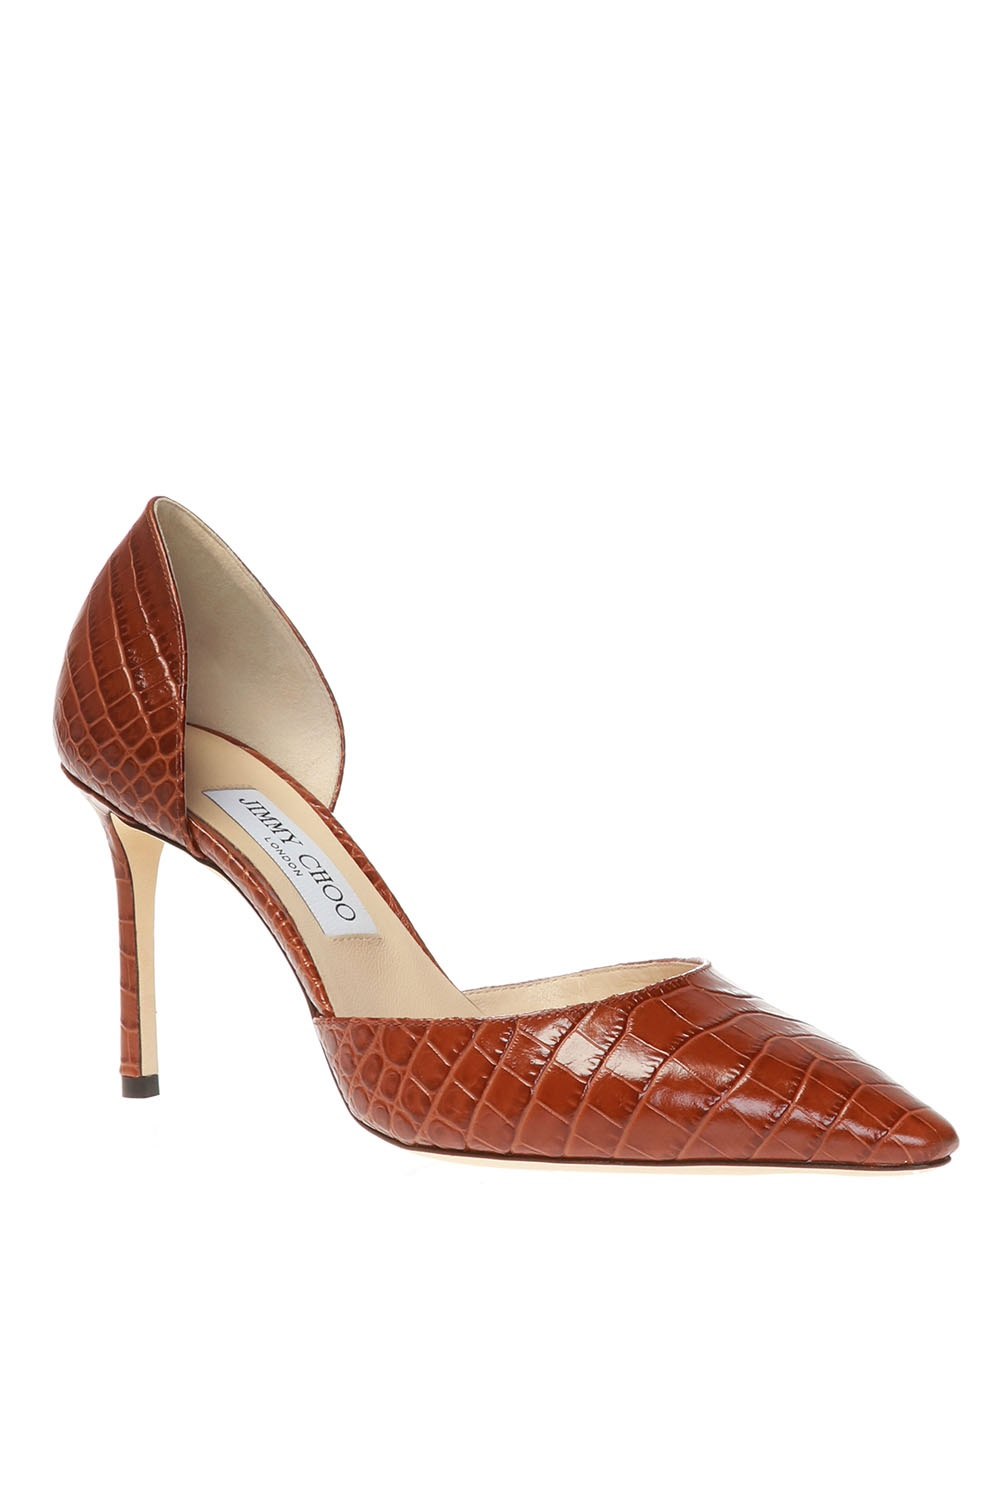 Jimmy Choo 'Esther' leather stiletto pumps